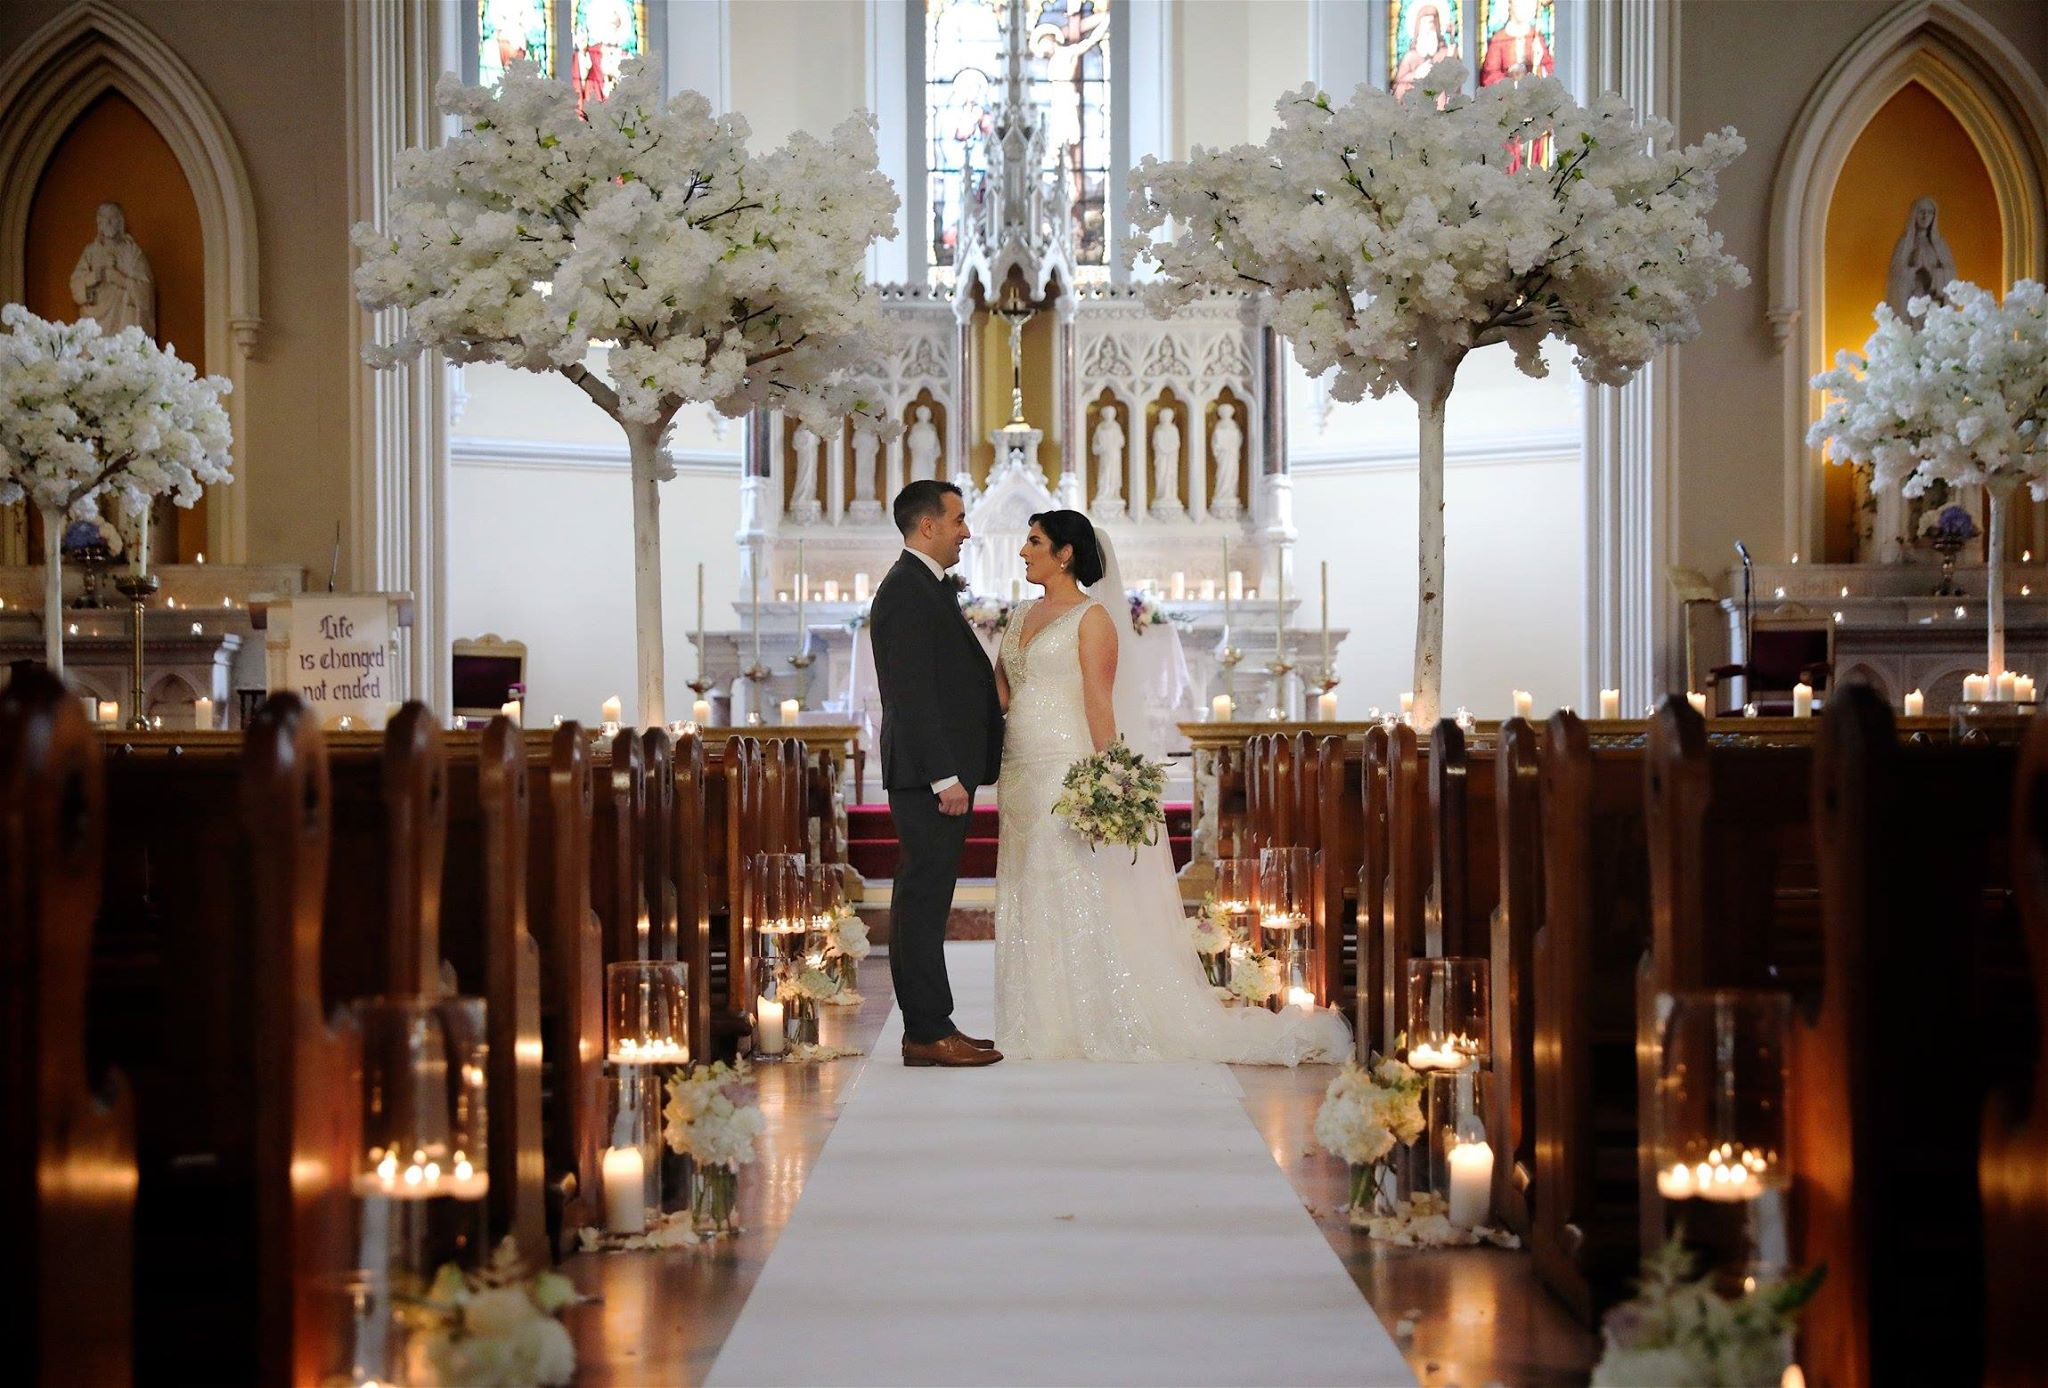 Romantic candle-lit church wedding set up , white cherry blossoms, candle vases, wedding flowers